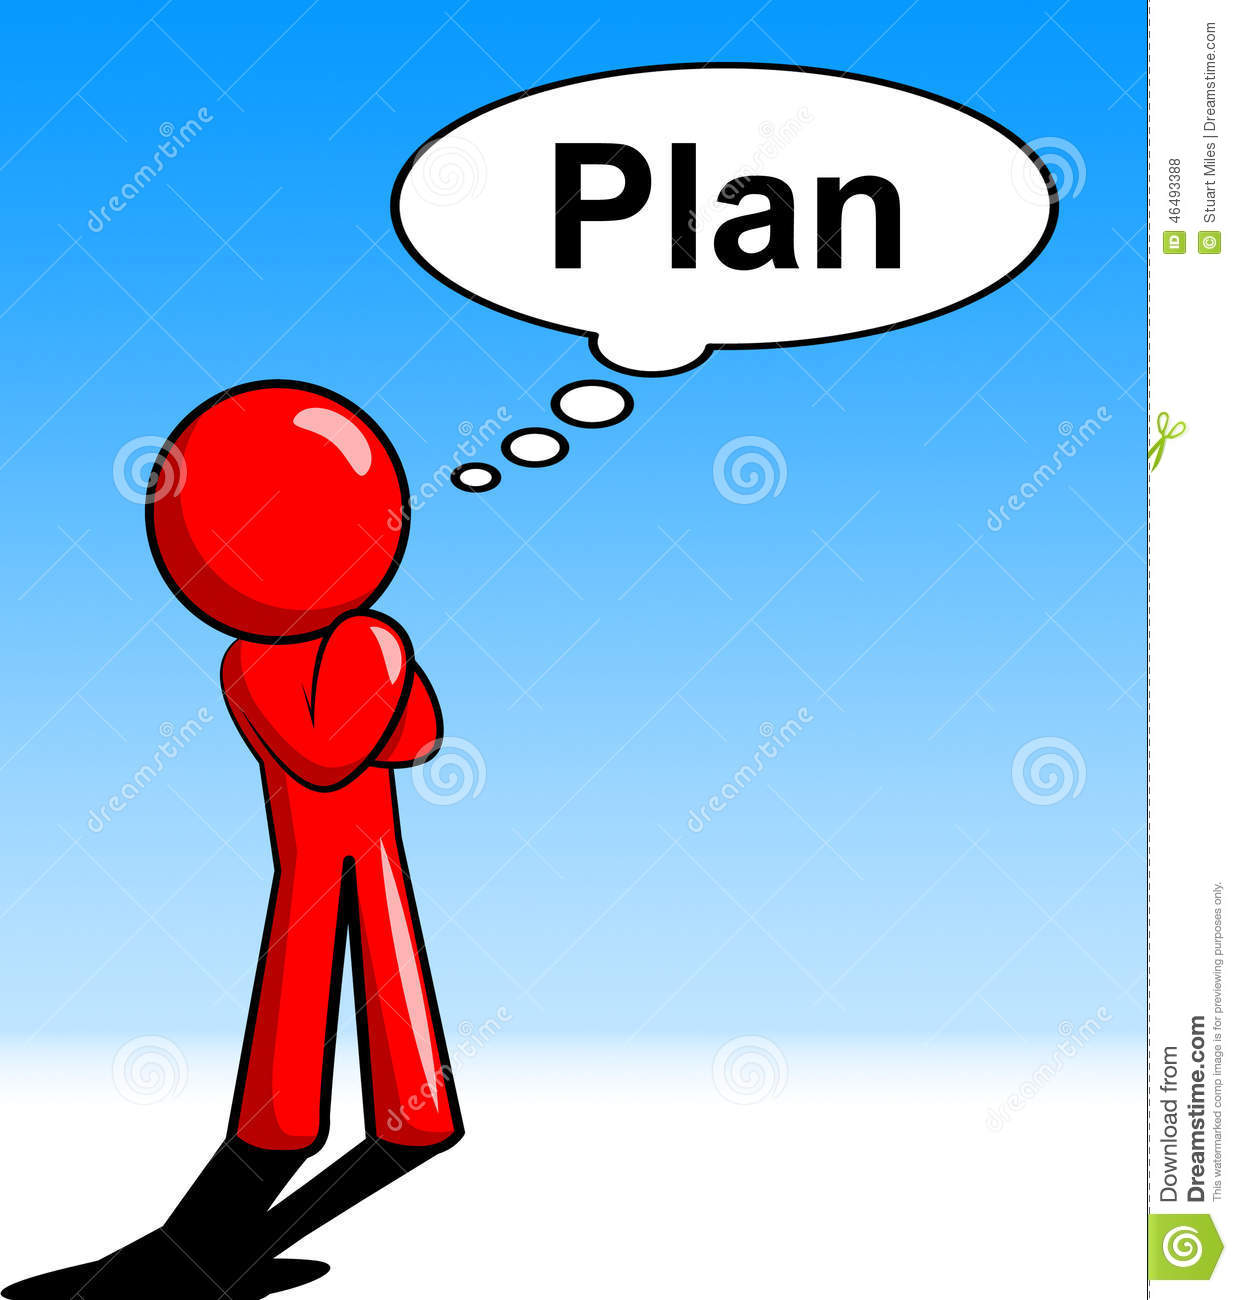 Thinking About Plan Means Formula Procedure And Consideration.